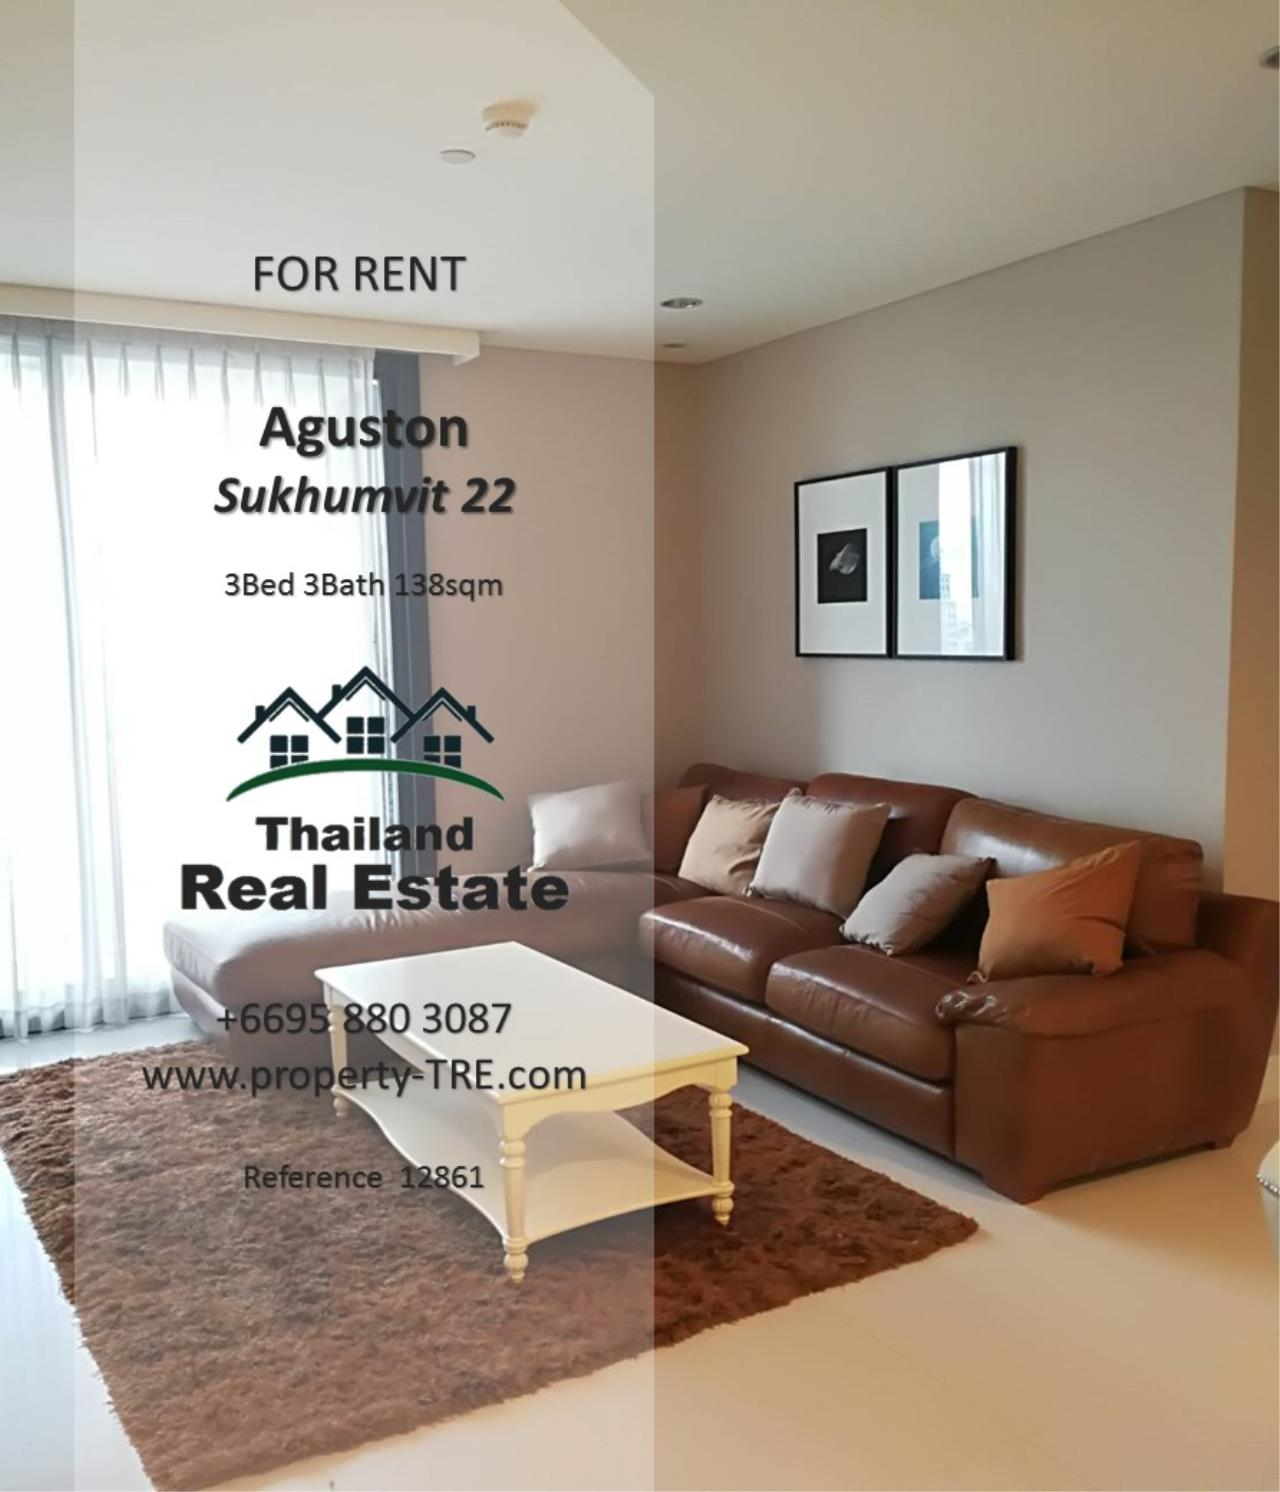 Thailand Real Estate Agency's 3 Bedroom Condo at Aguston Sukhumvit 22 near BTS Phrom Phong(12681) 1